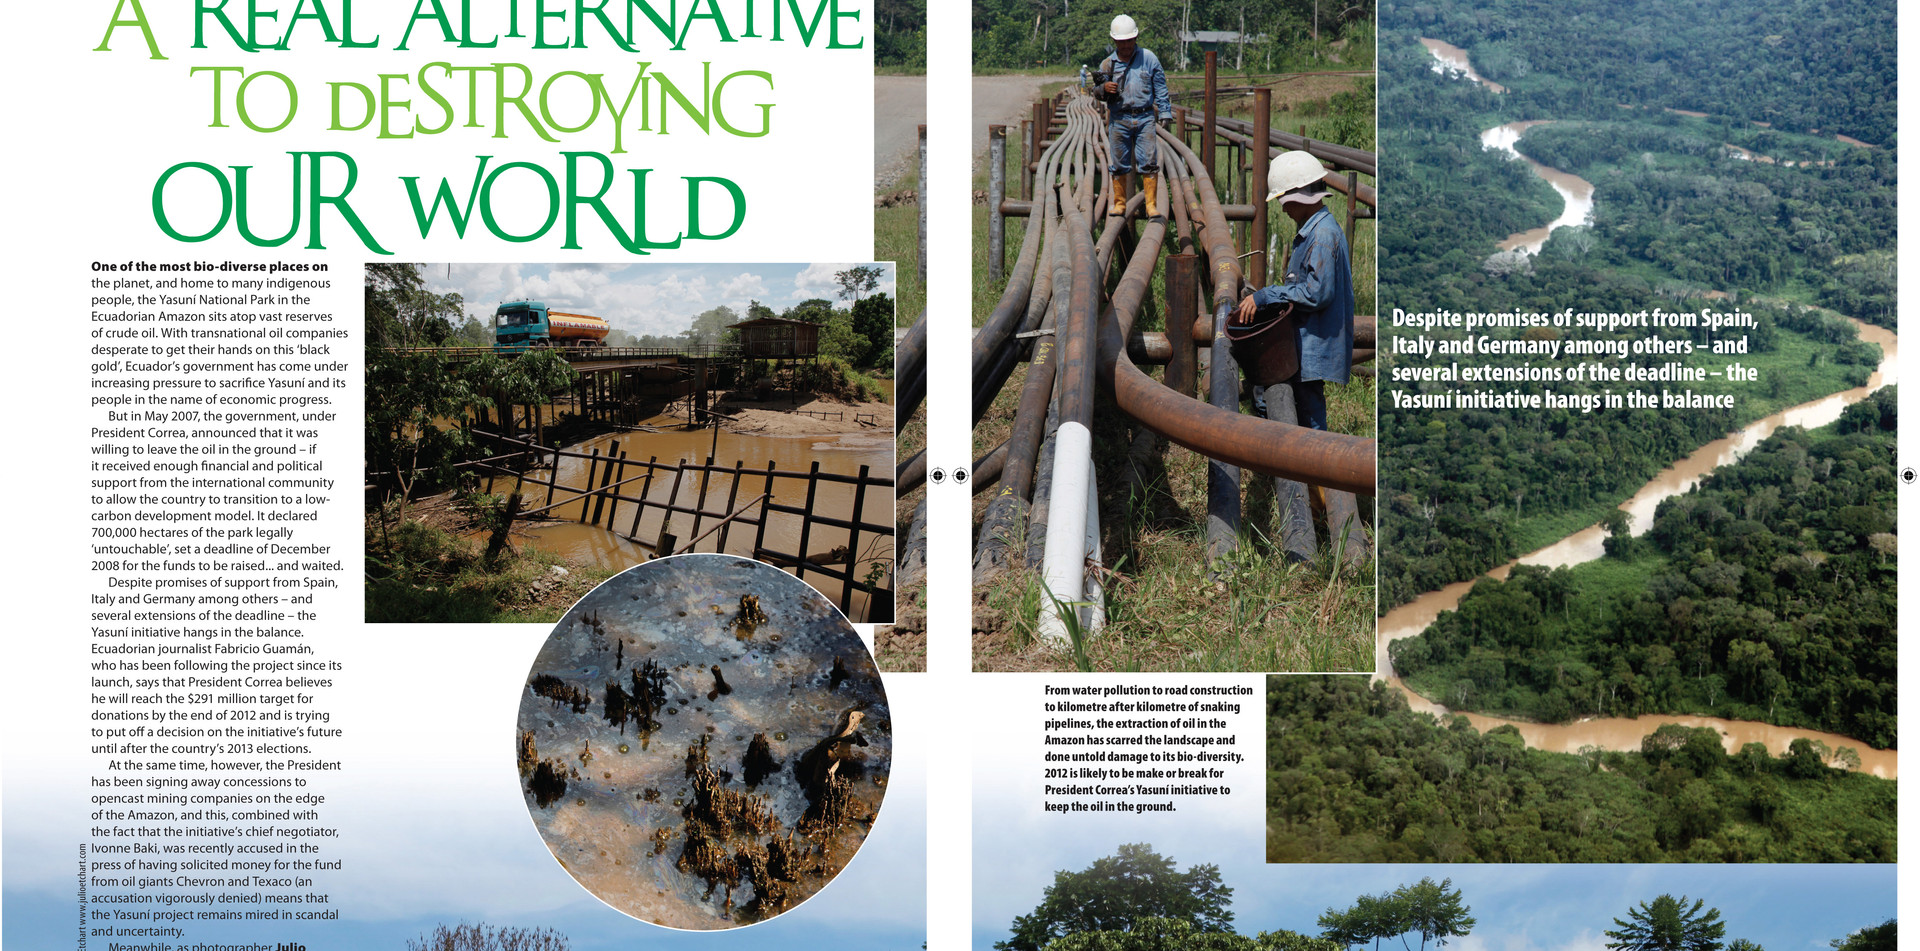 Coverage of environmental alternatives in the Ecuadorean Amazon for the New Internationalist magazine